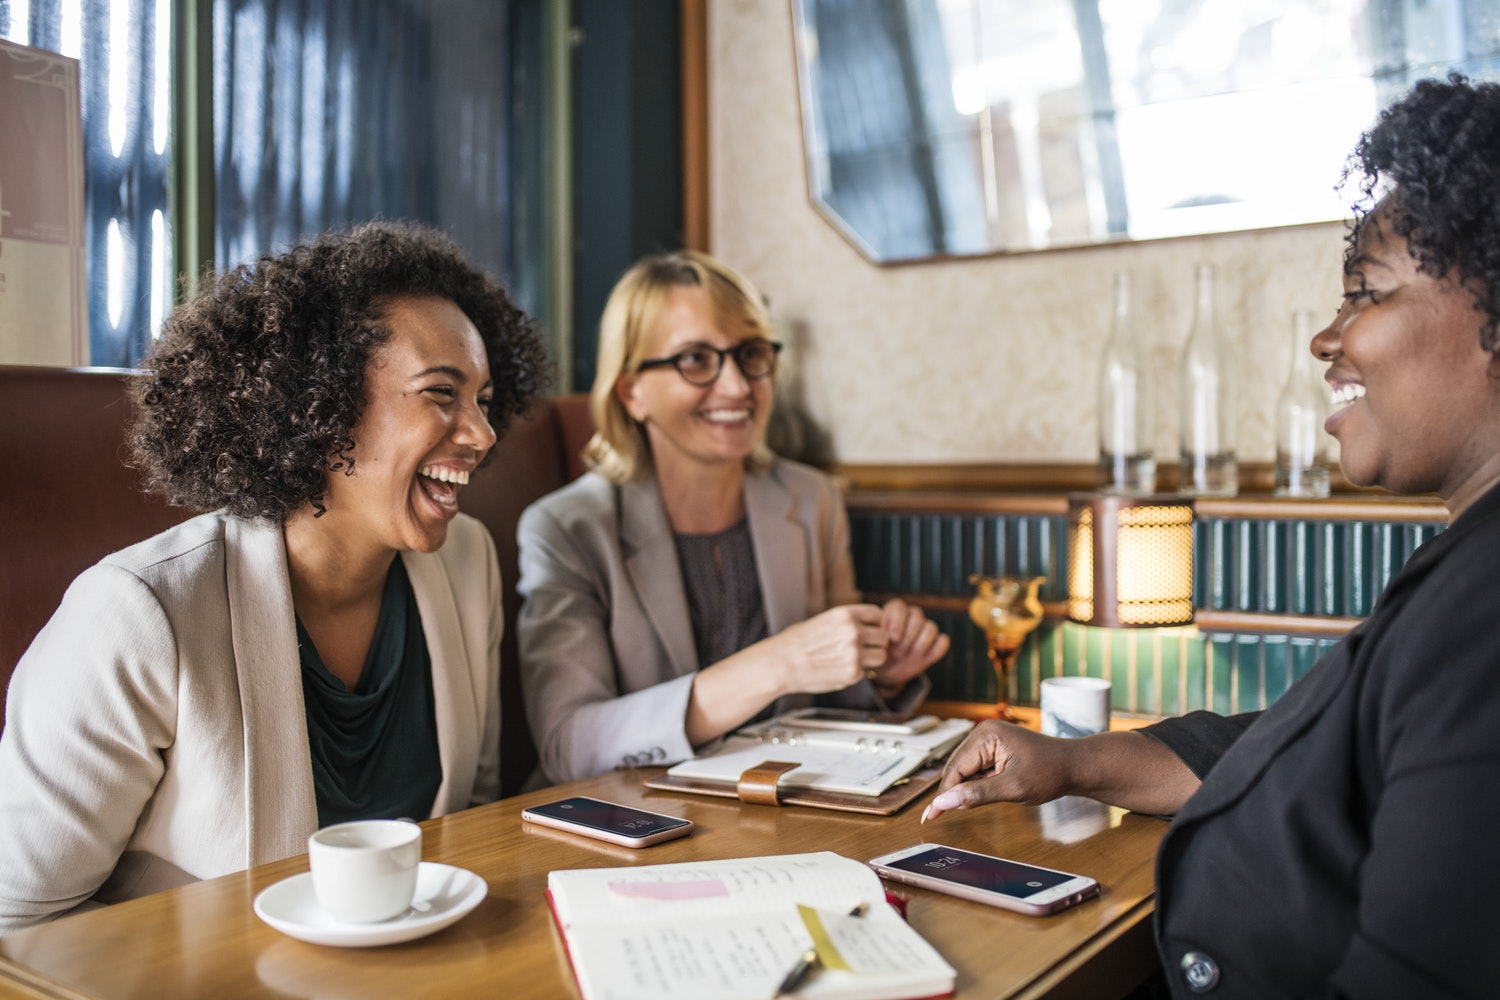 Business Networking: Why It Matters, How It's Done